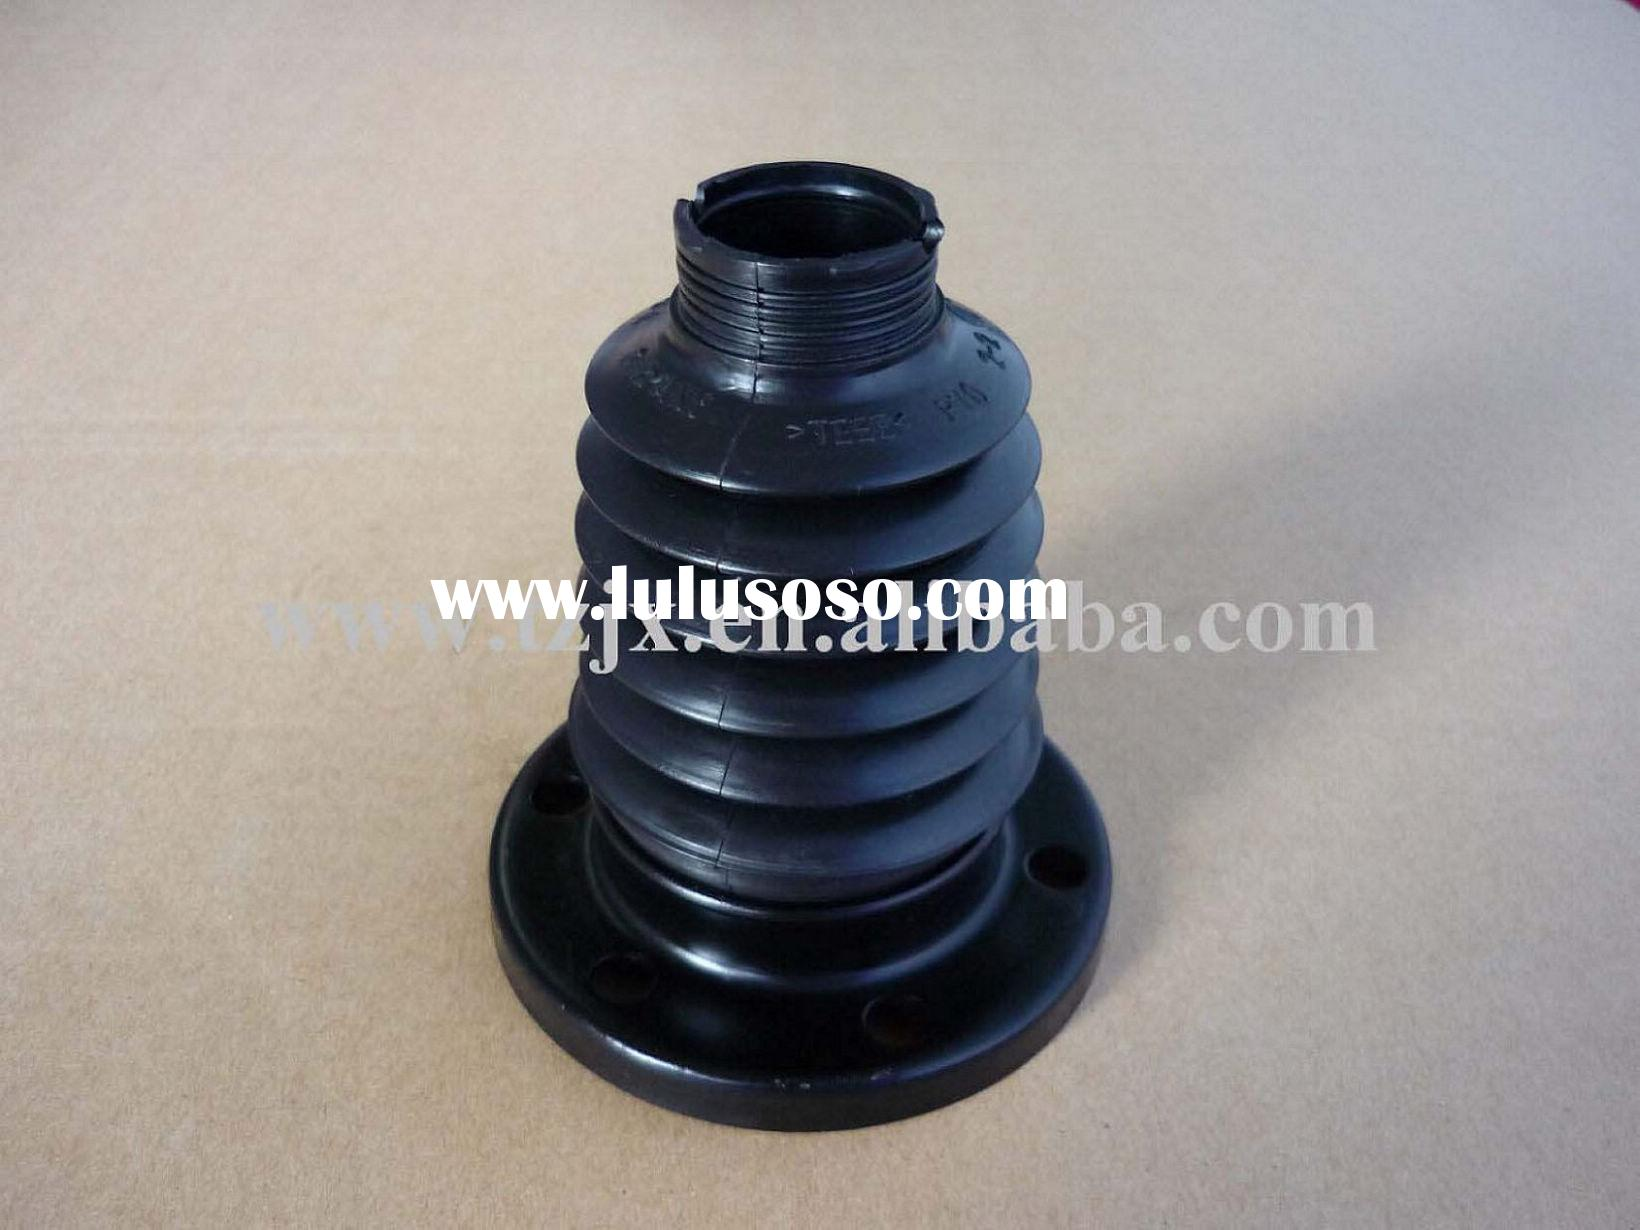 Rubber boot seal auto dirt proof dust